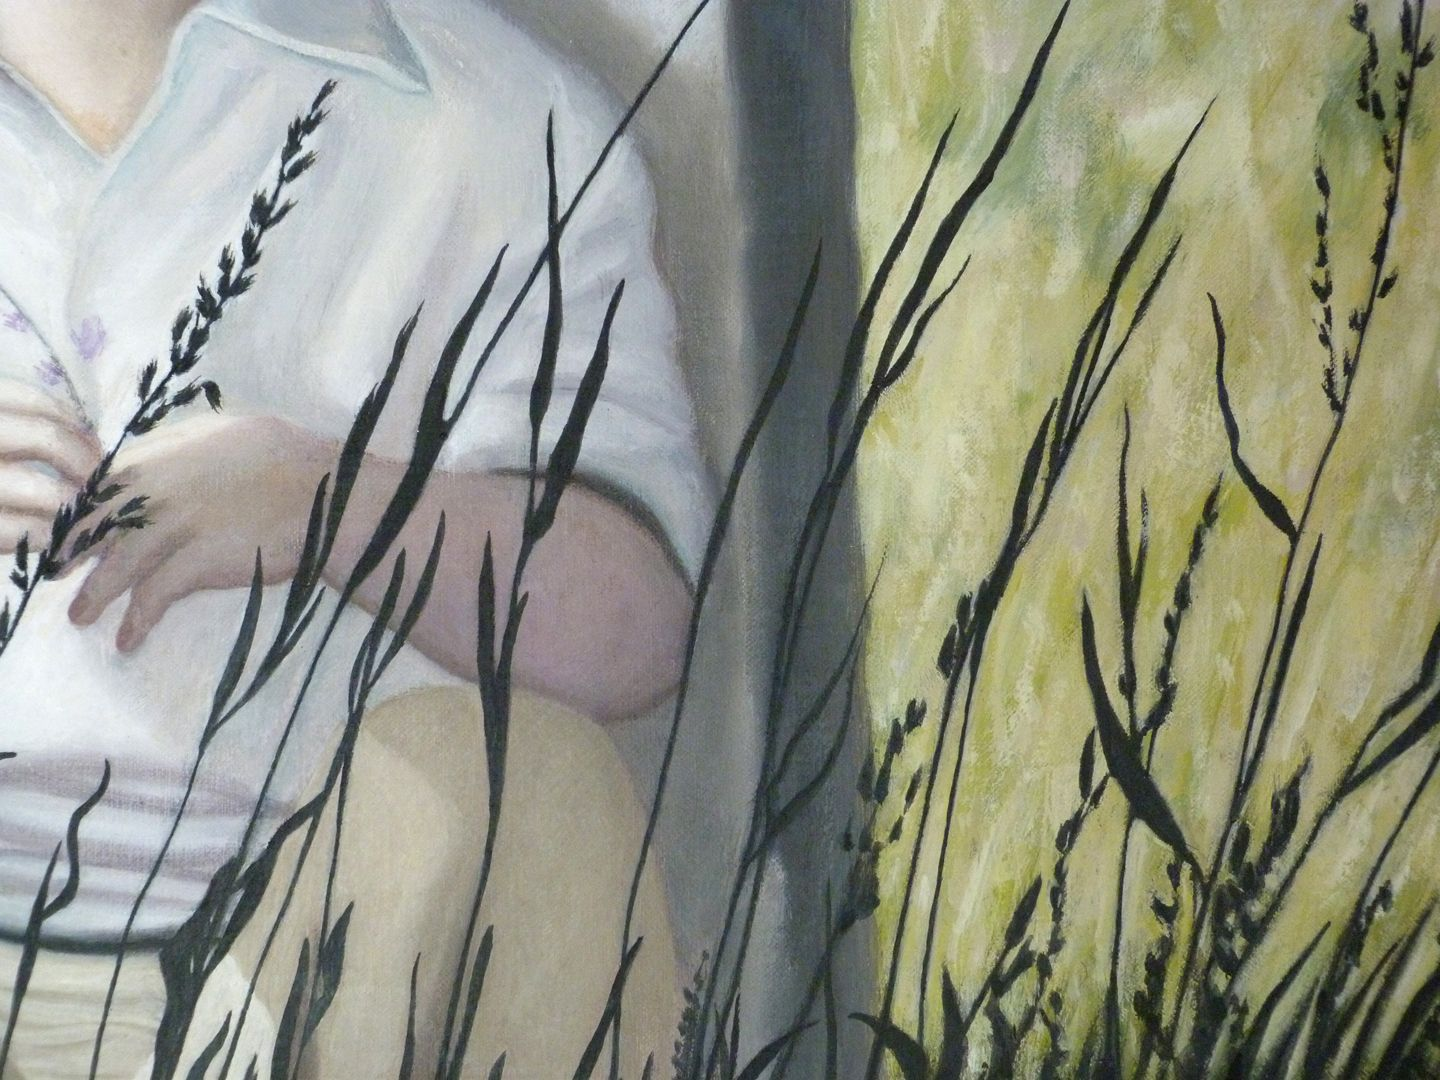 The poet Schramm Leaves of grass, detail